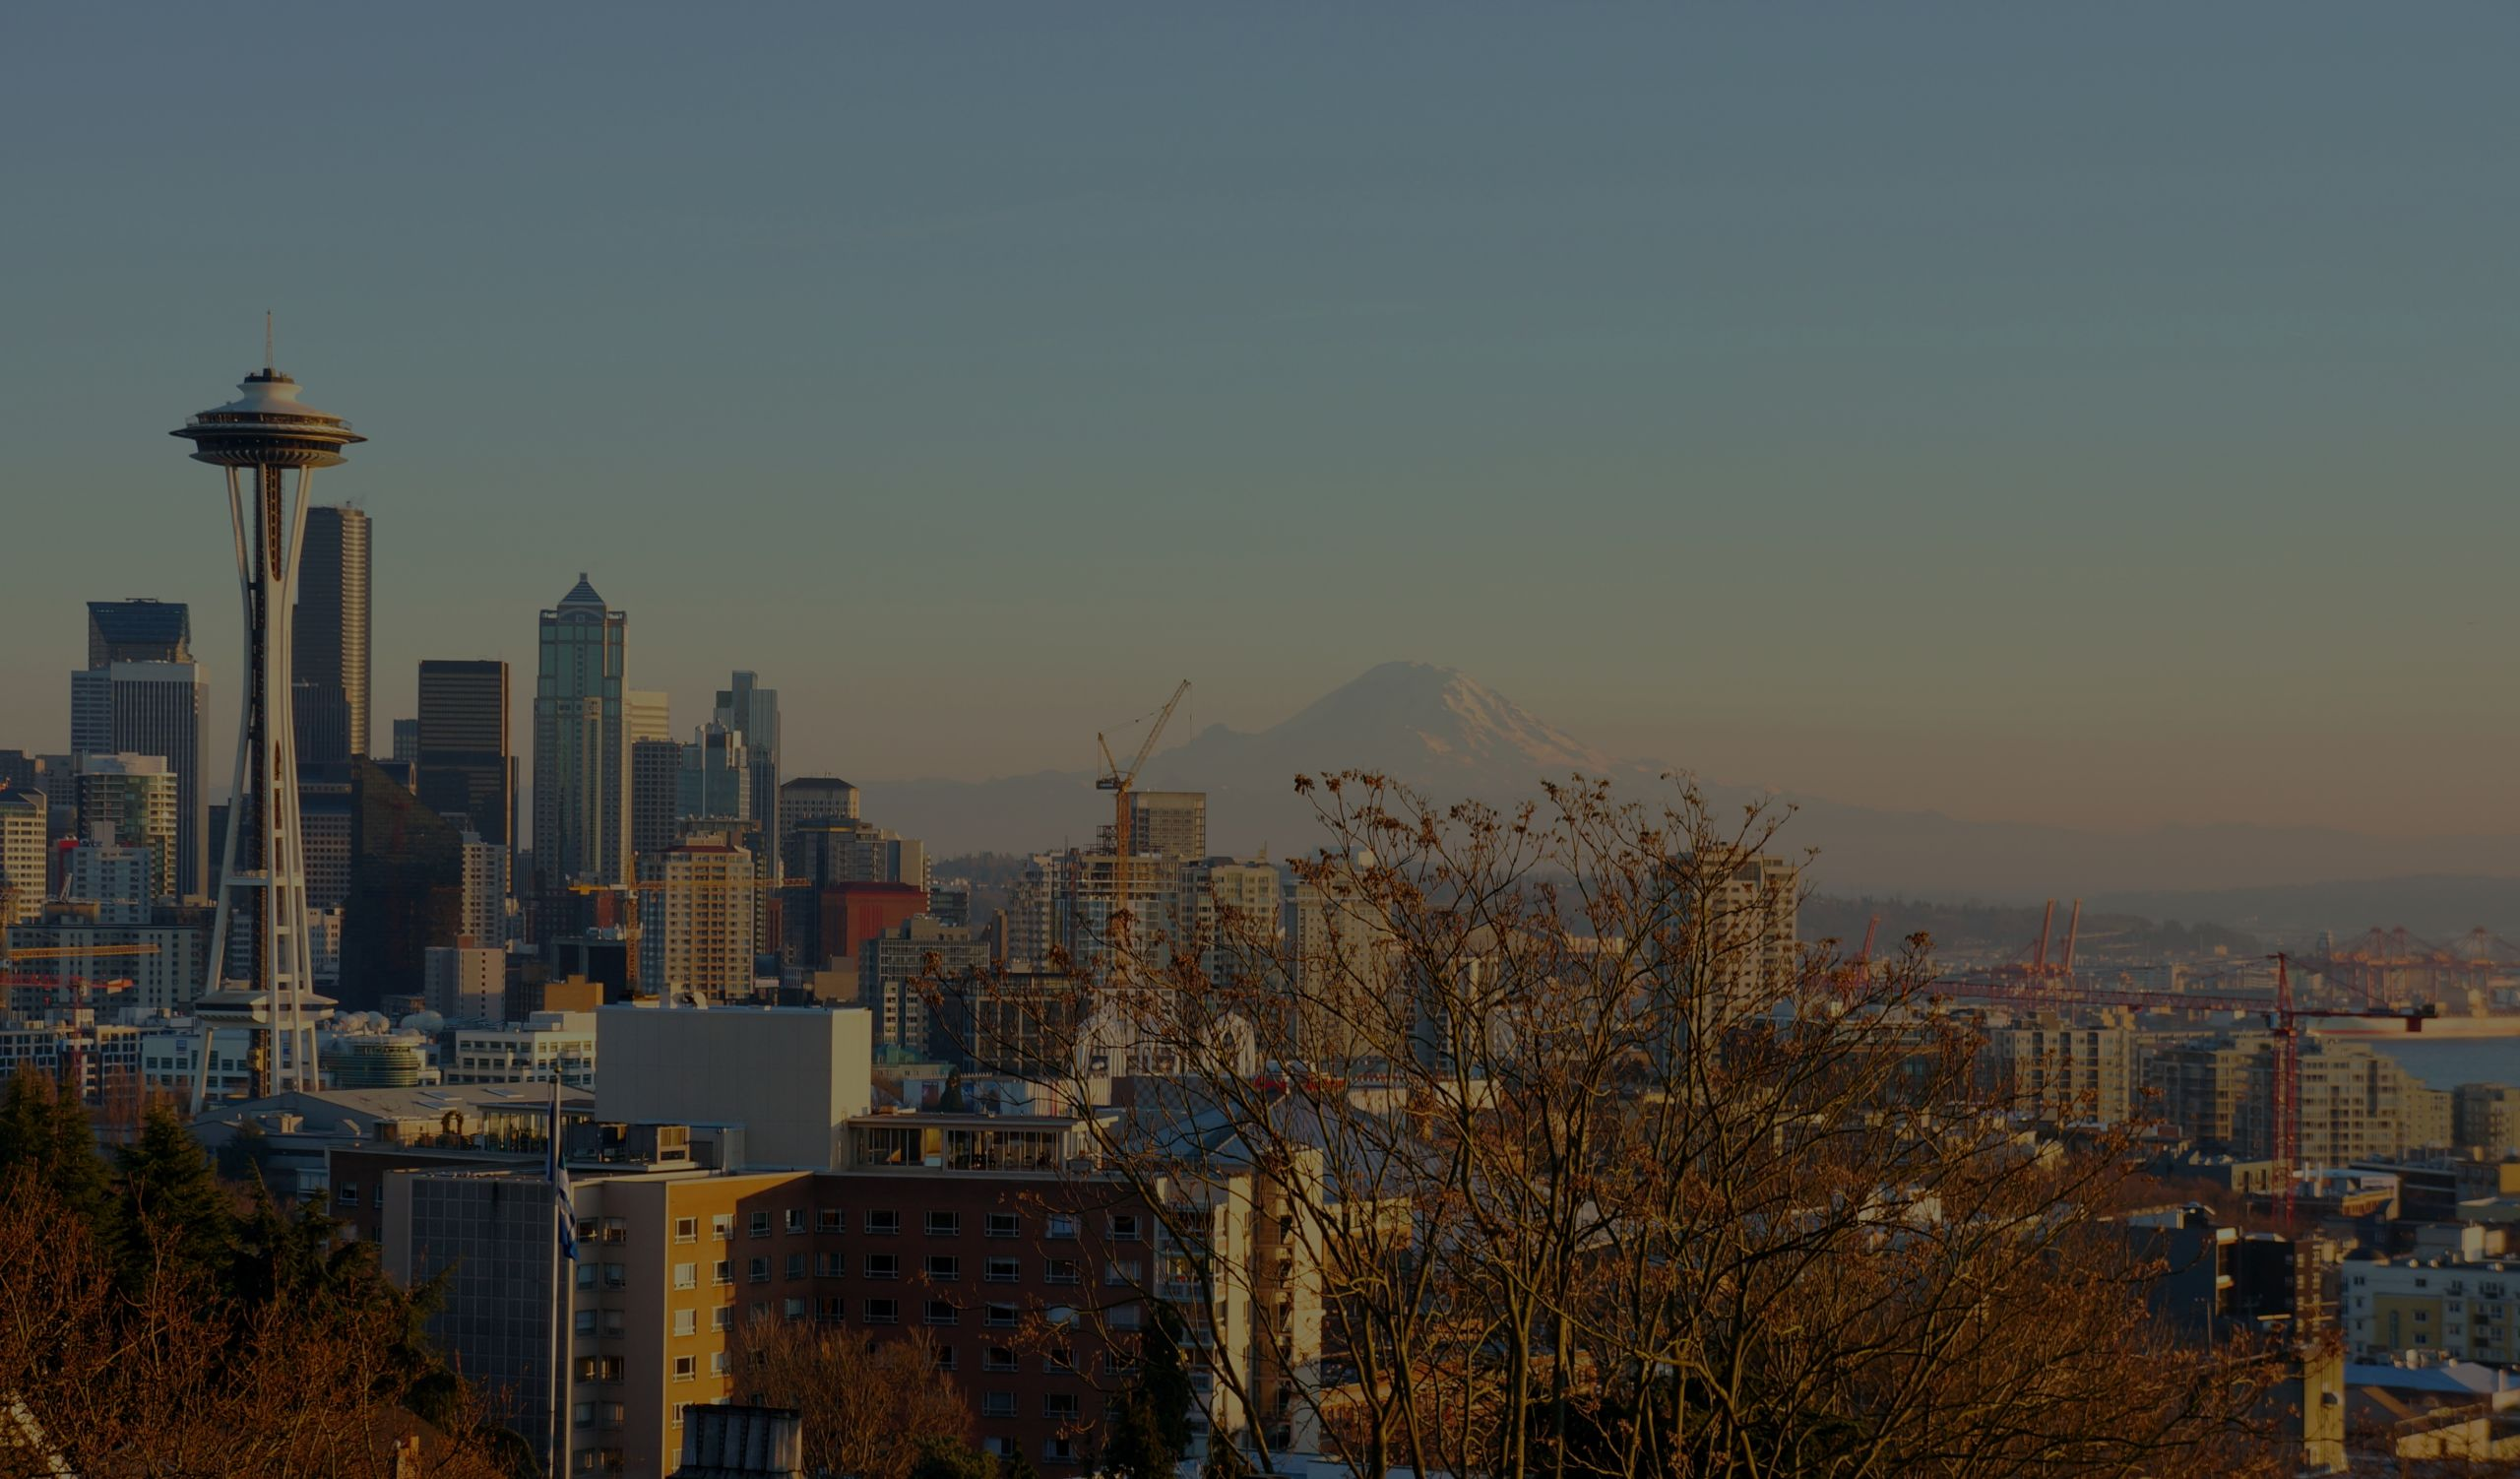 Relocating to Seattle? The city boasts ever changing varied views. This diverse region is a destination.